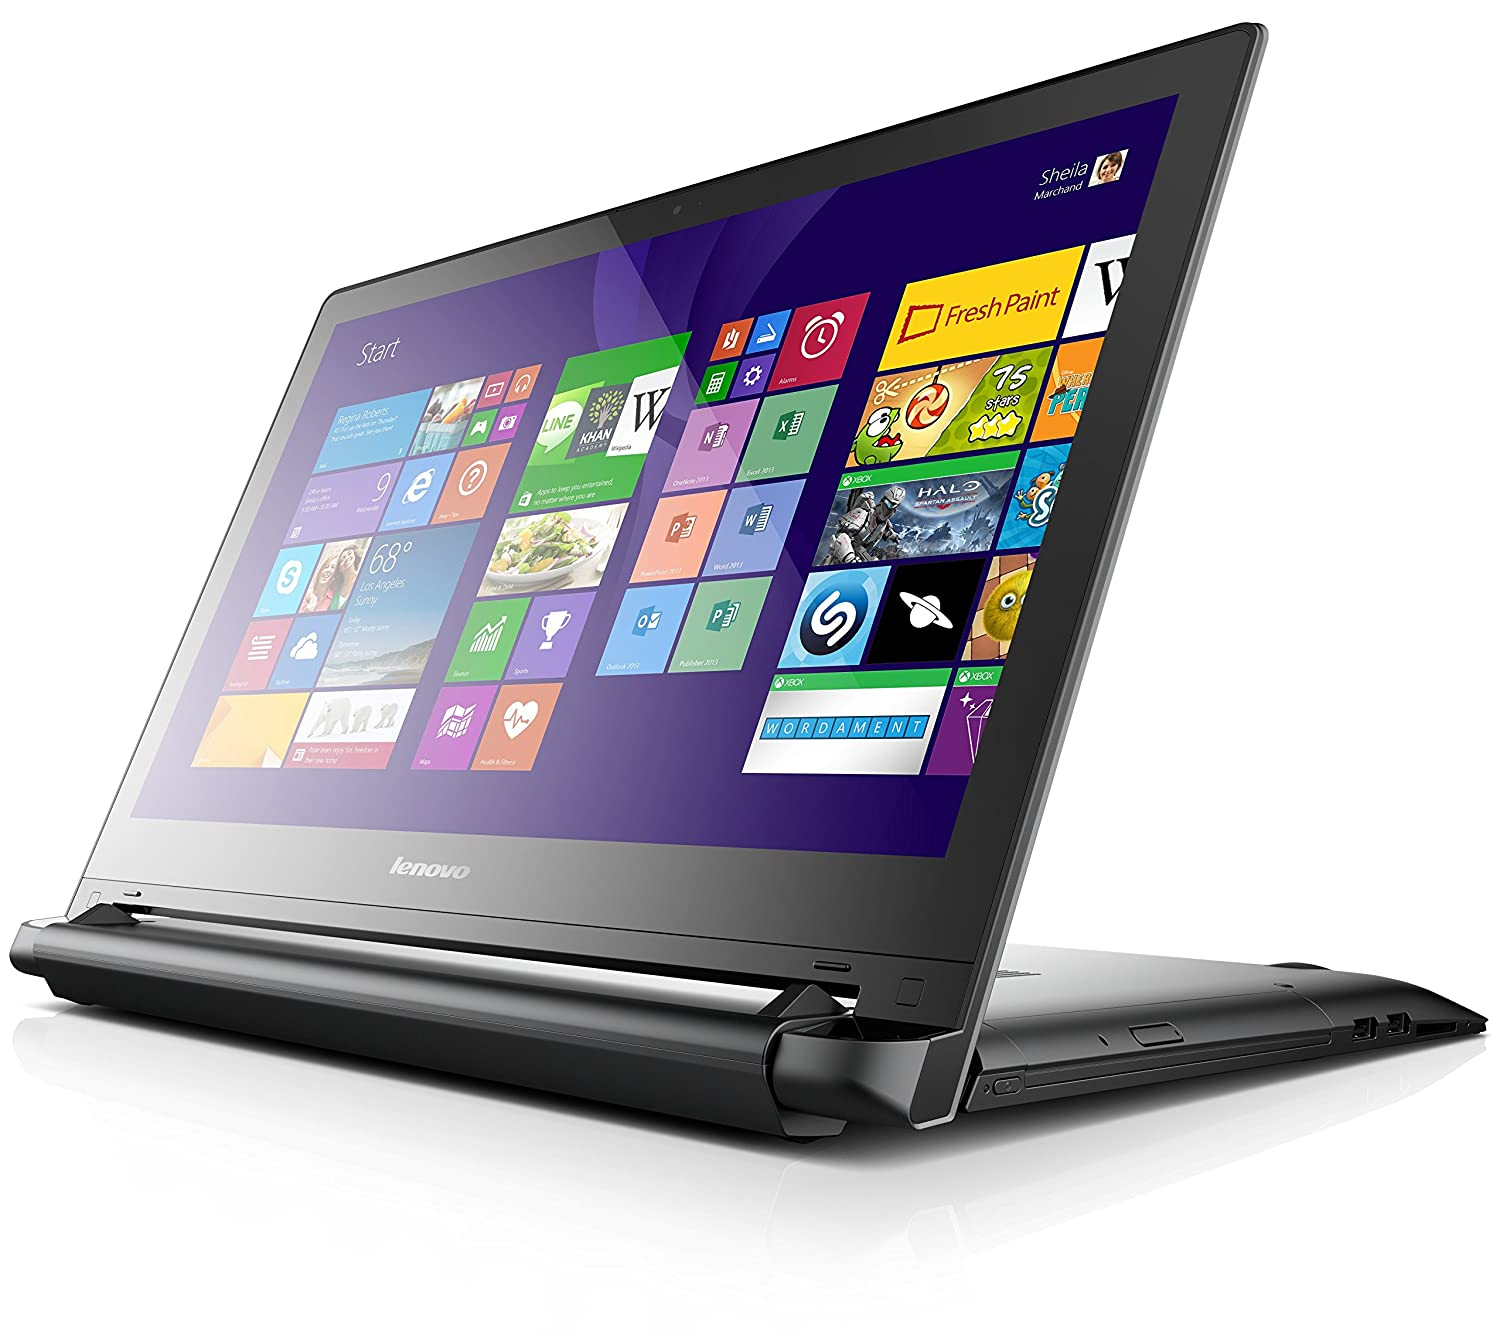 Lenovo Flex 2 - Pantalla táctil Negro - Ordenador portátil (i5-4210U, DVD Super Multi DL, Touchpad, Windows 8.1)